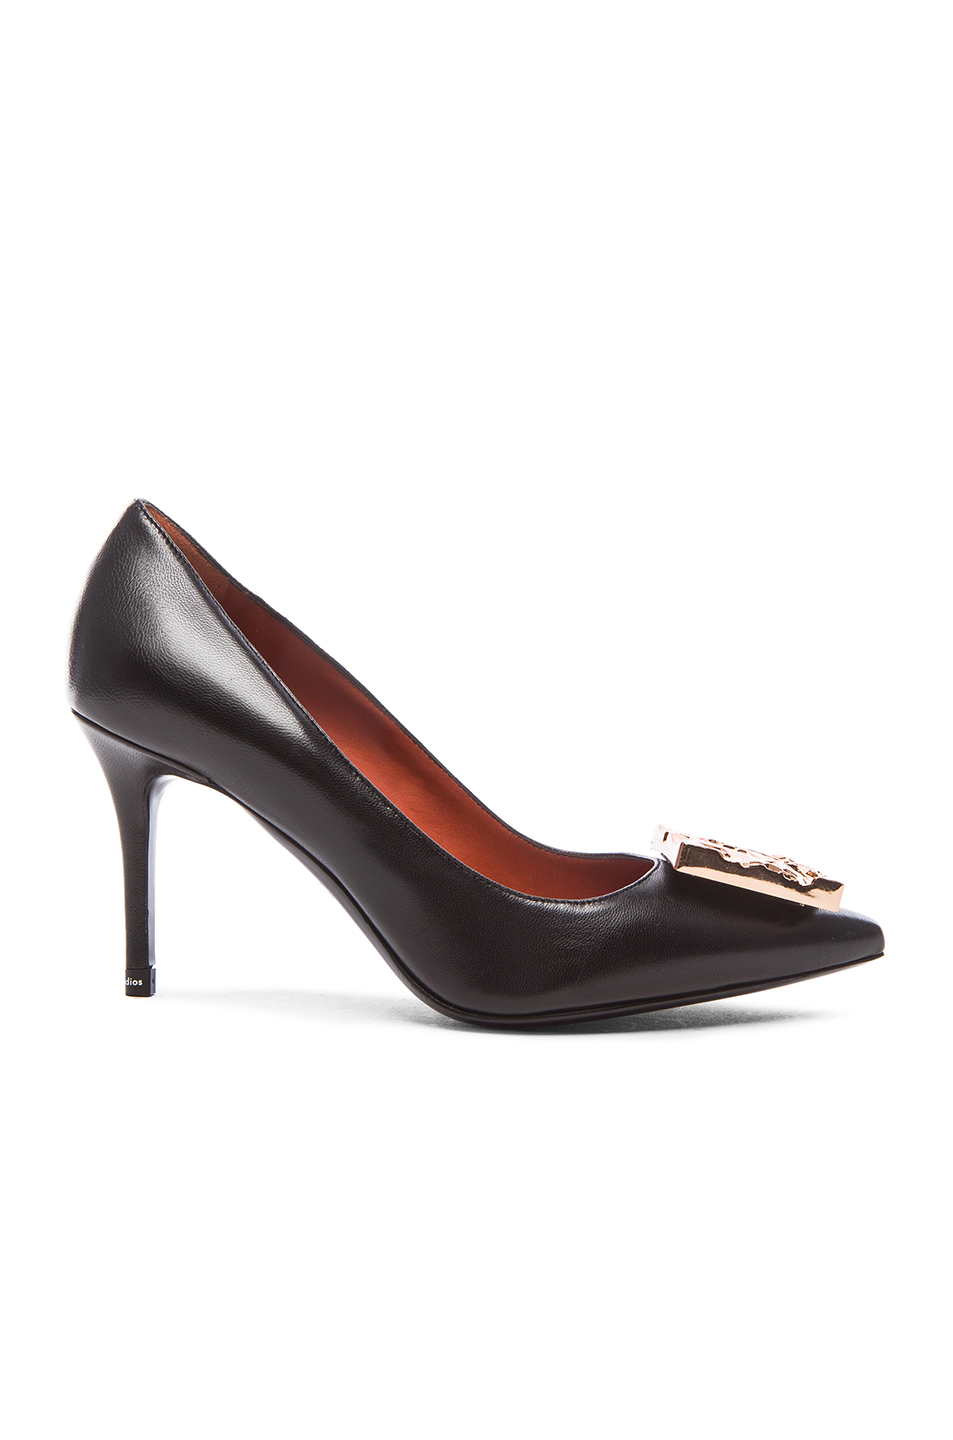 Acne Studios Andrea Leather Heels In Black Lyst